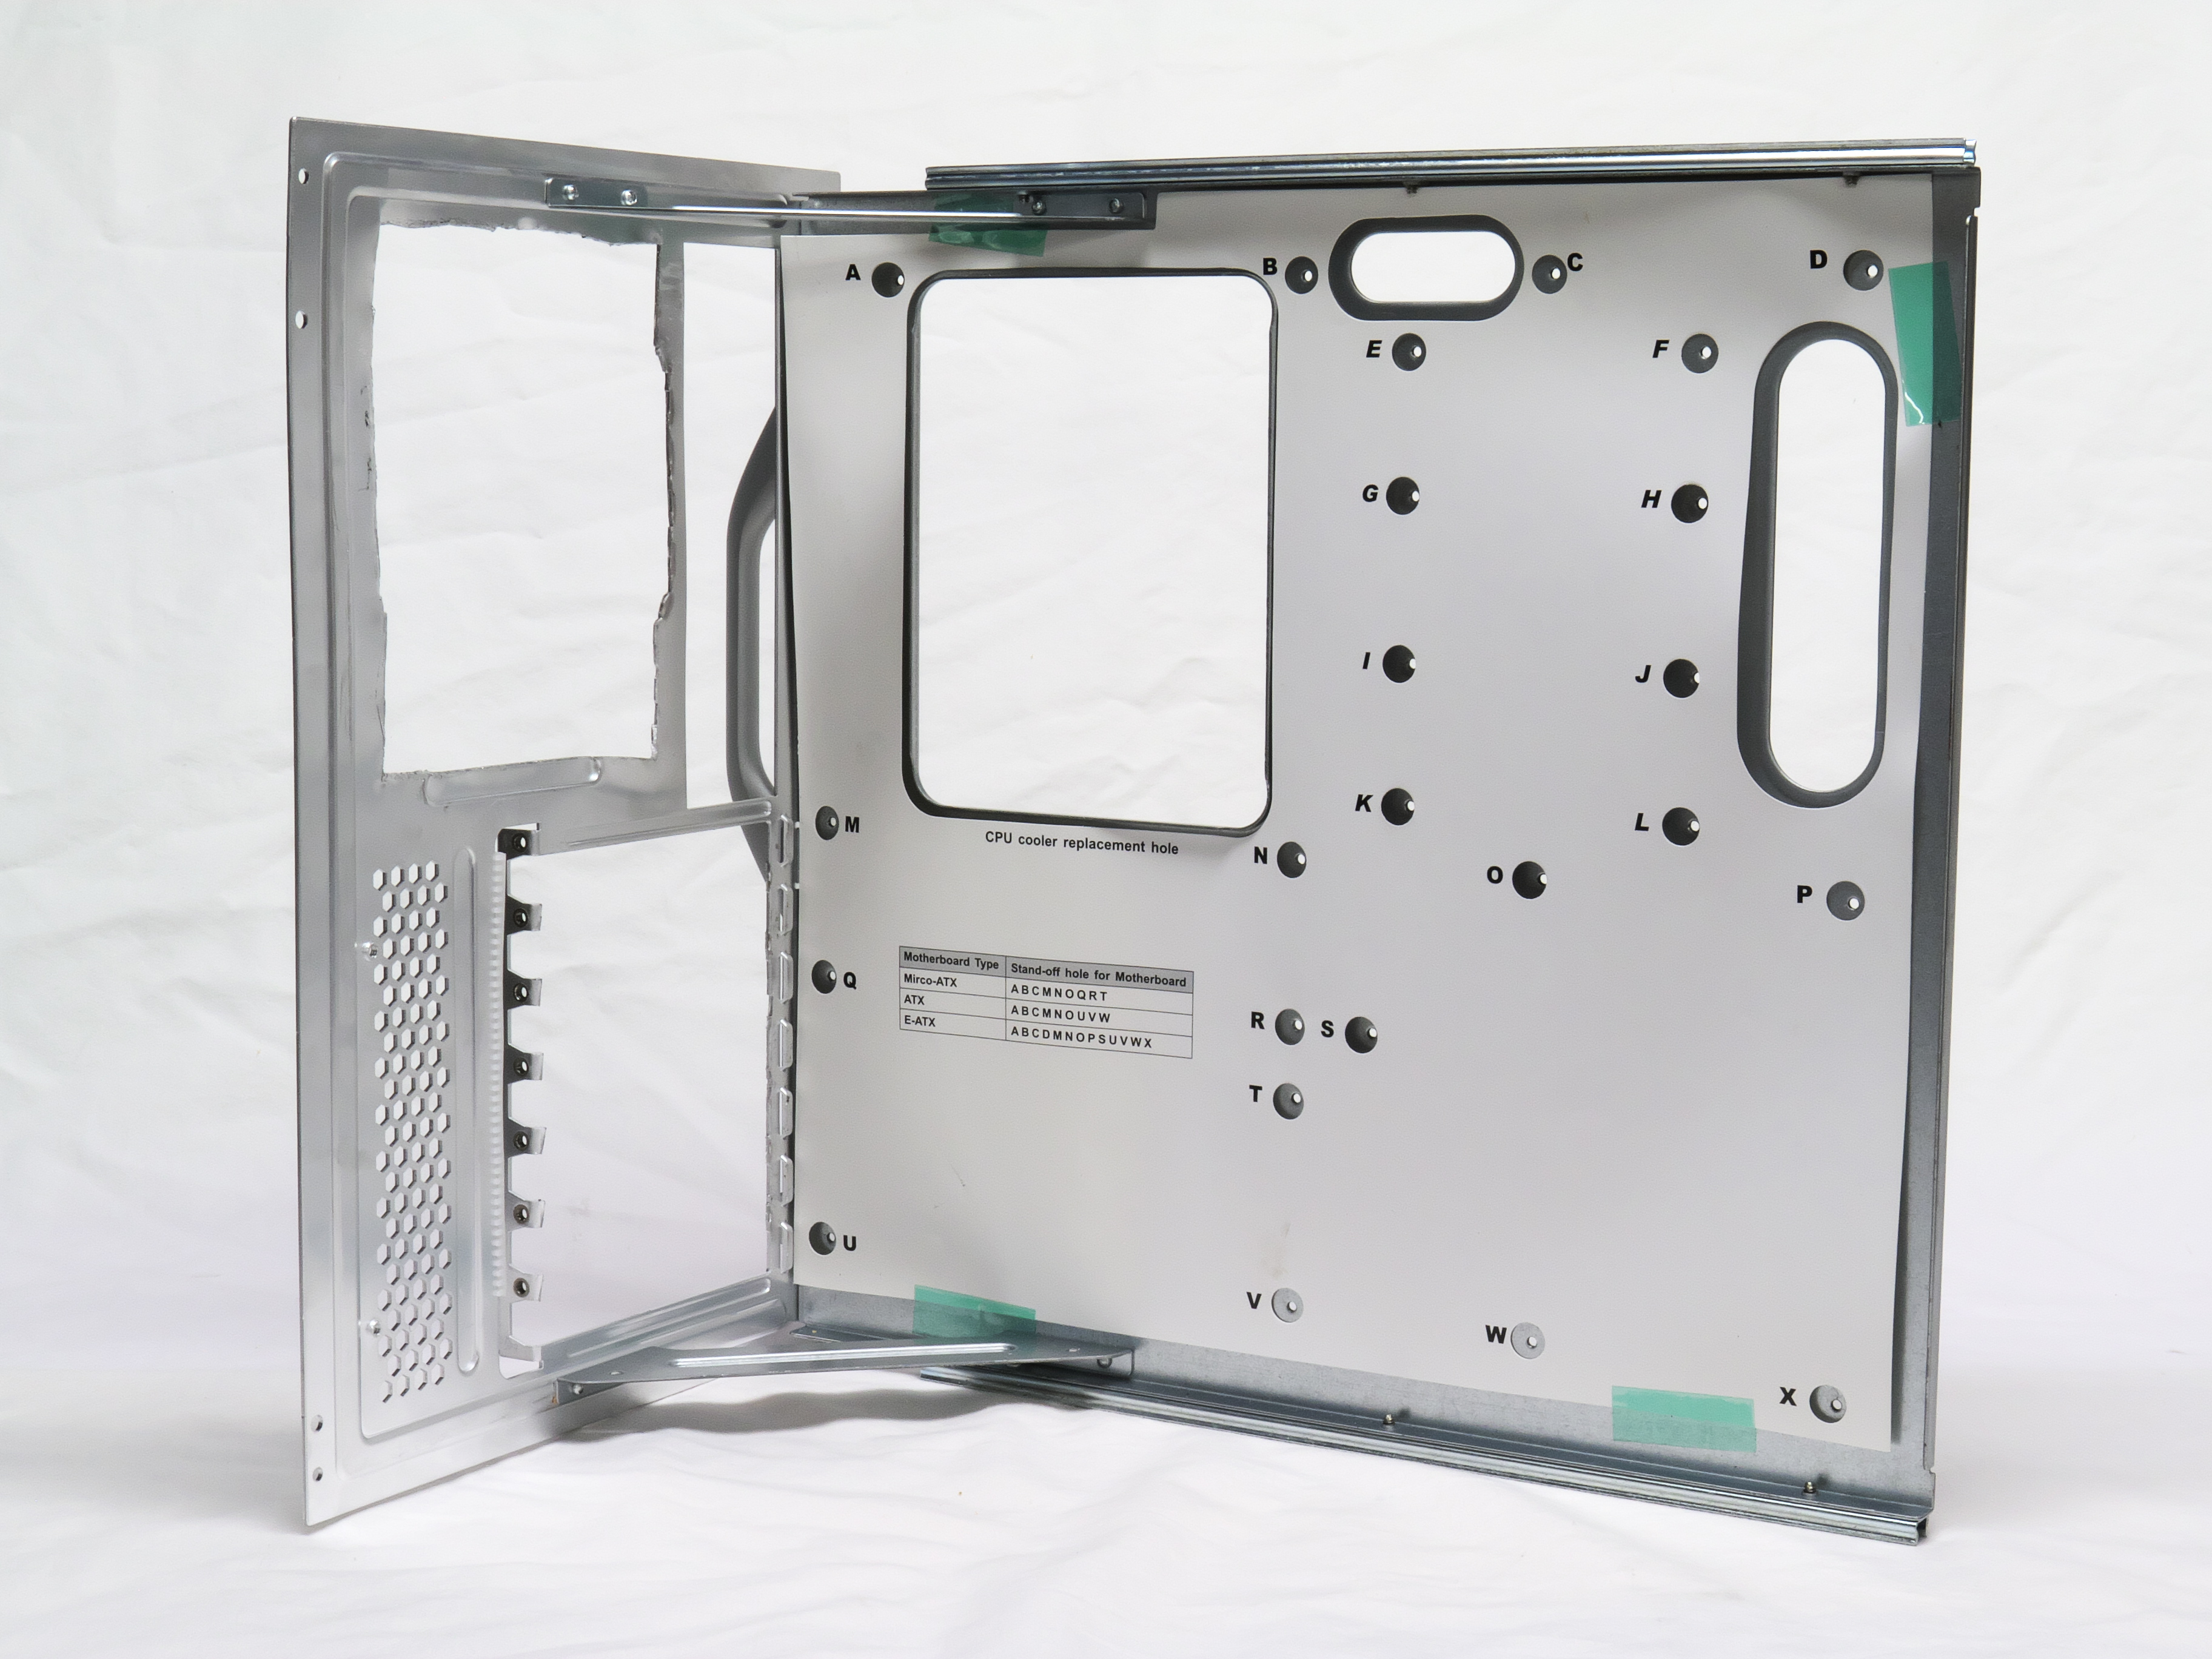 ATCS motherboard tray, used for testbed